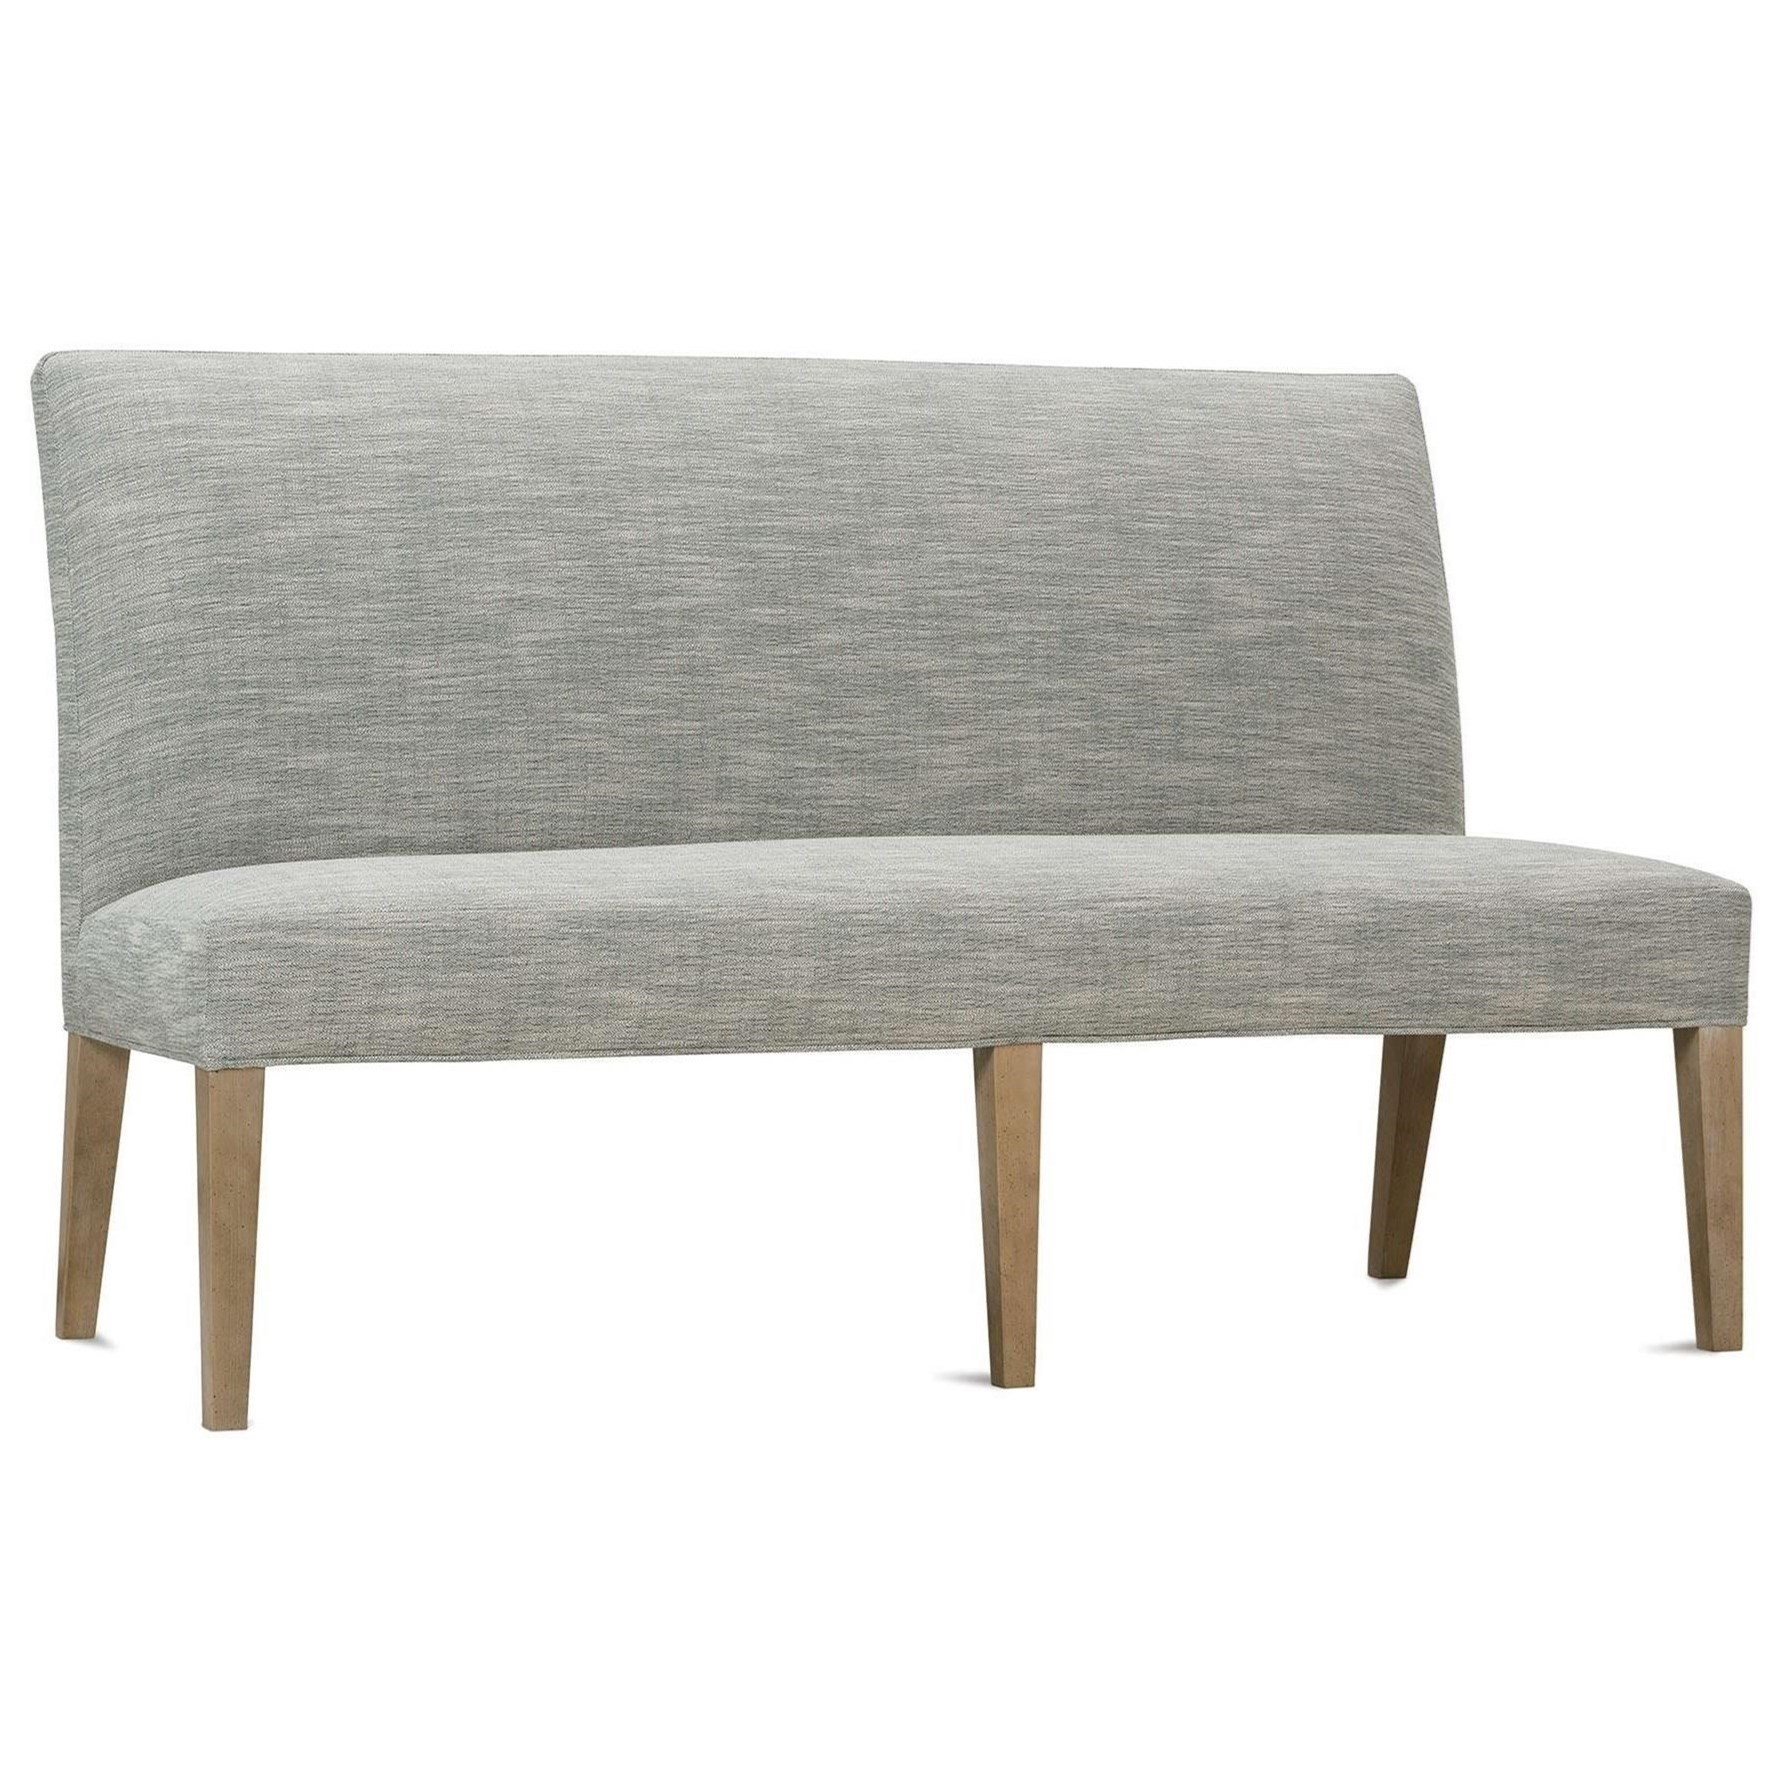 Finch Banquette by Rowe at Baer's Furniture